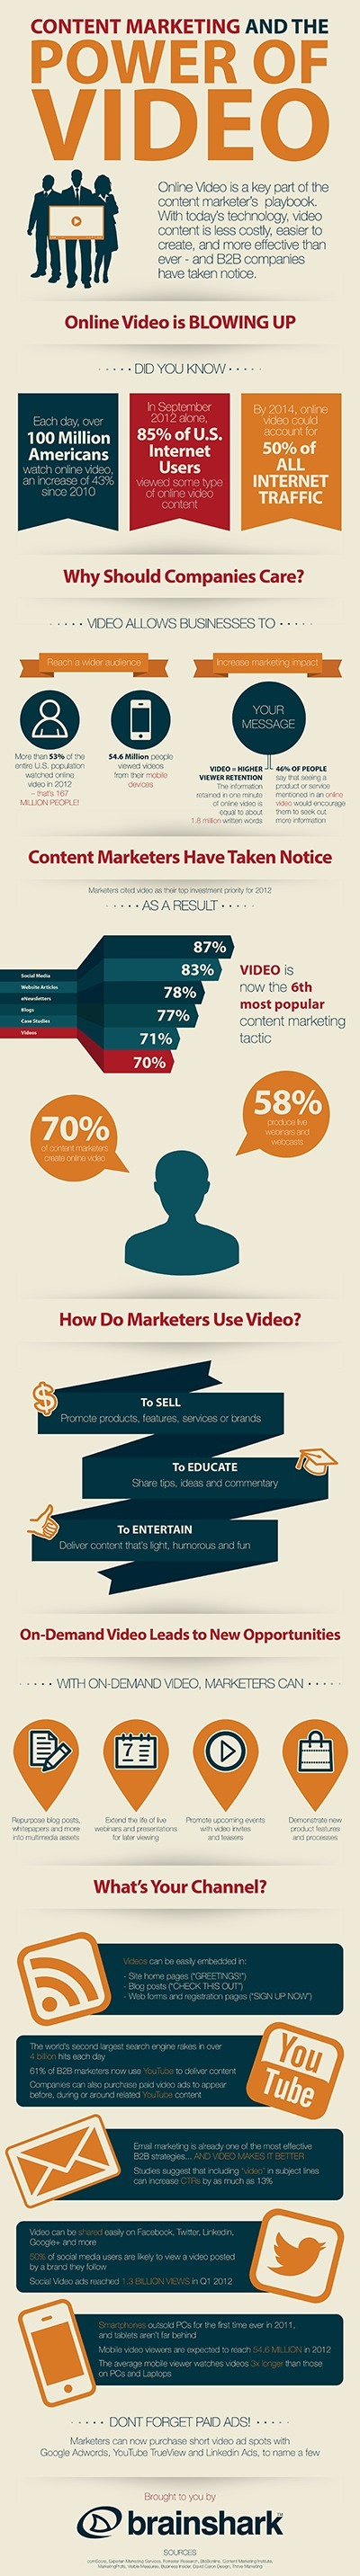 Content Marketing and the Power of Video [Infographic] | Inbound marketing, social and SEO | Scoop.it